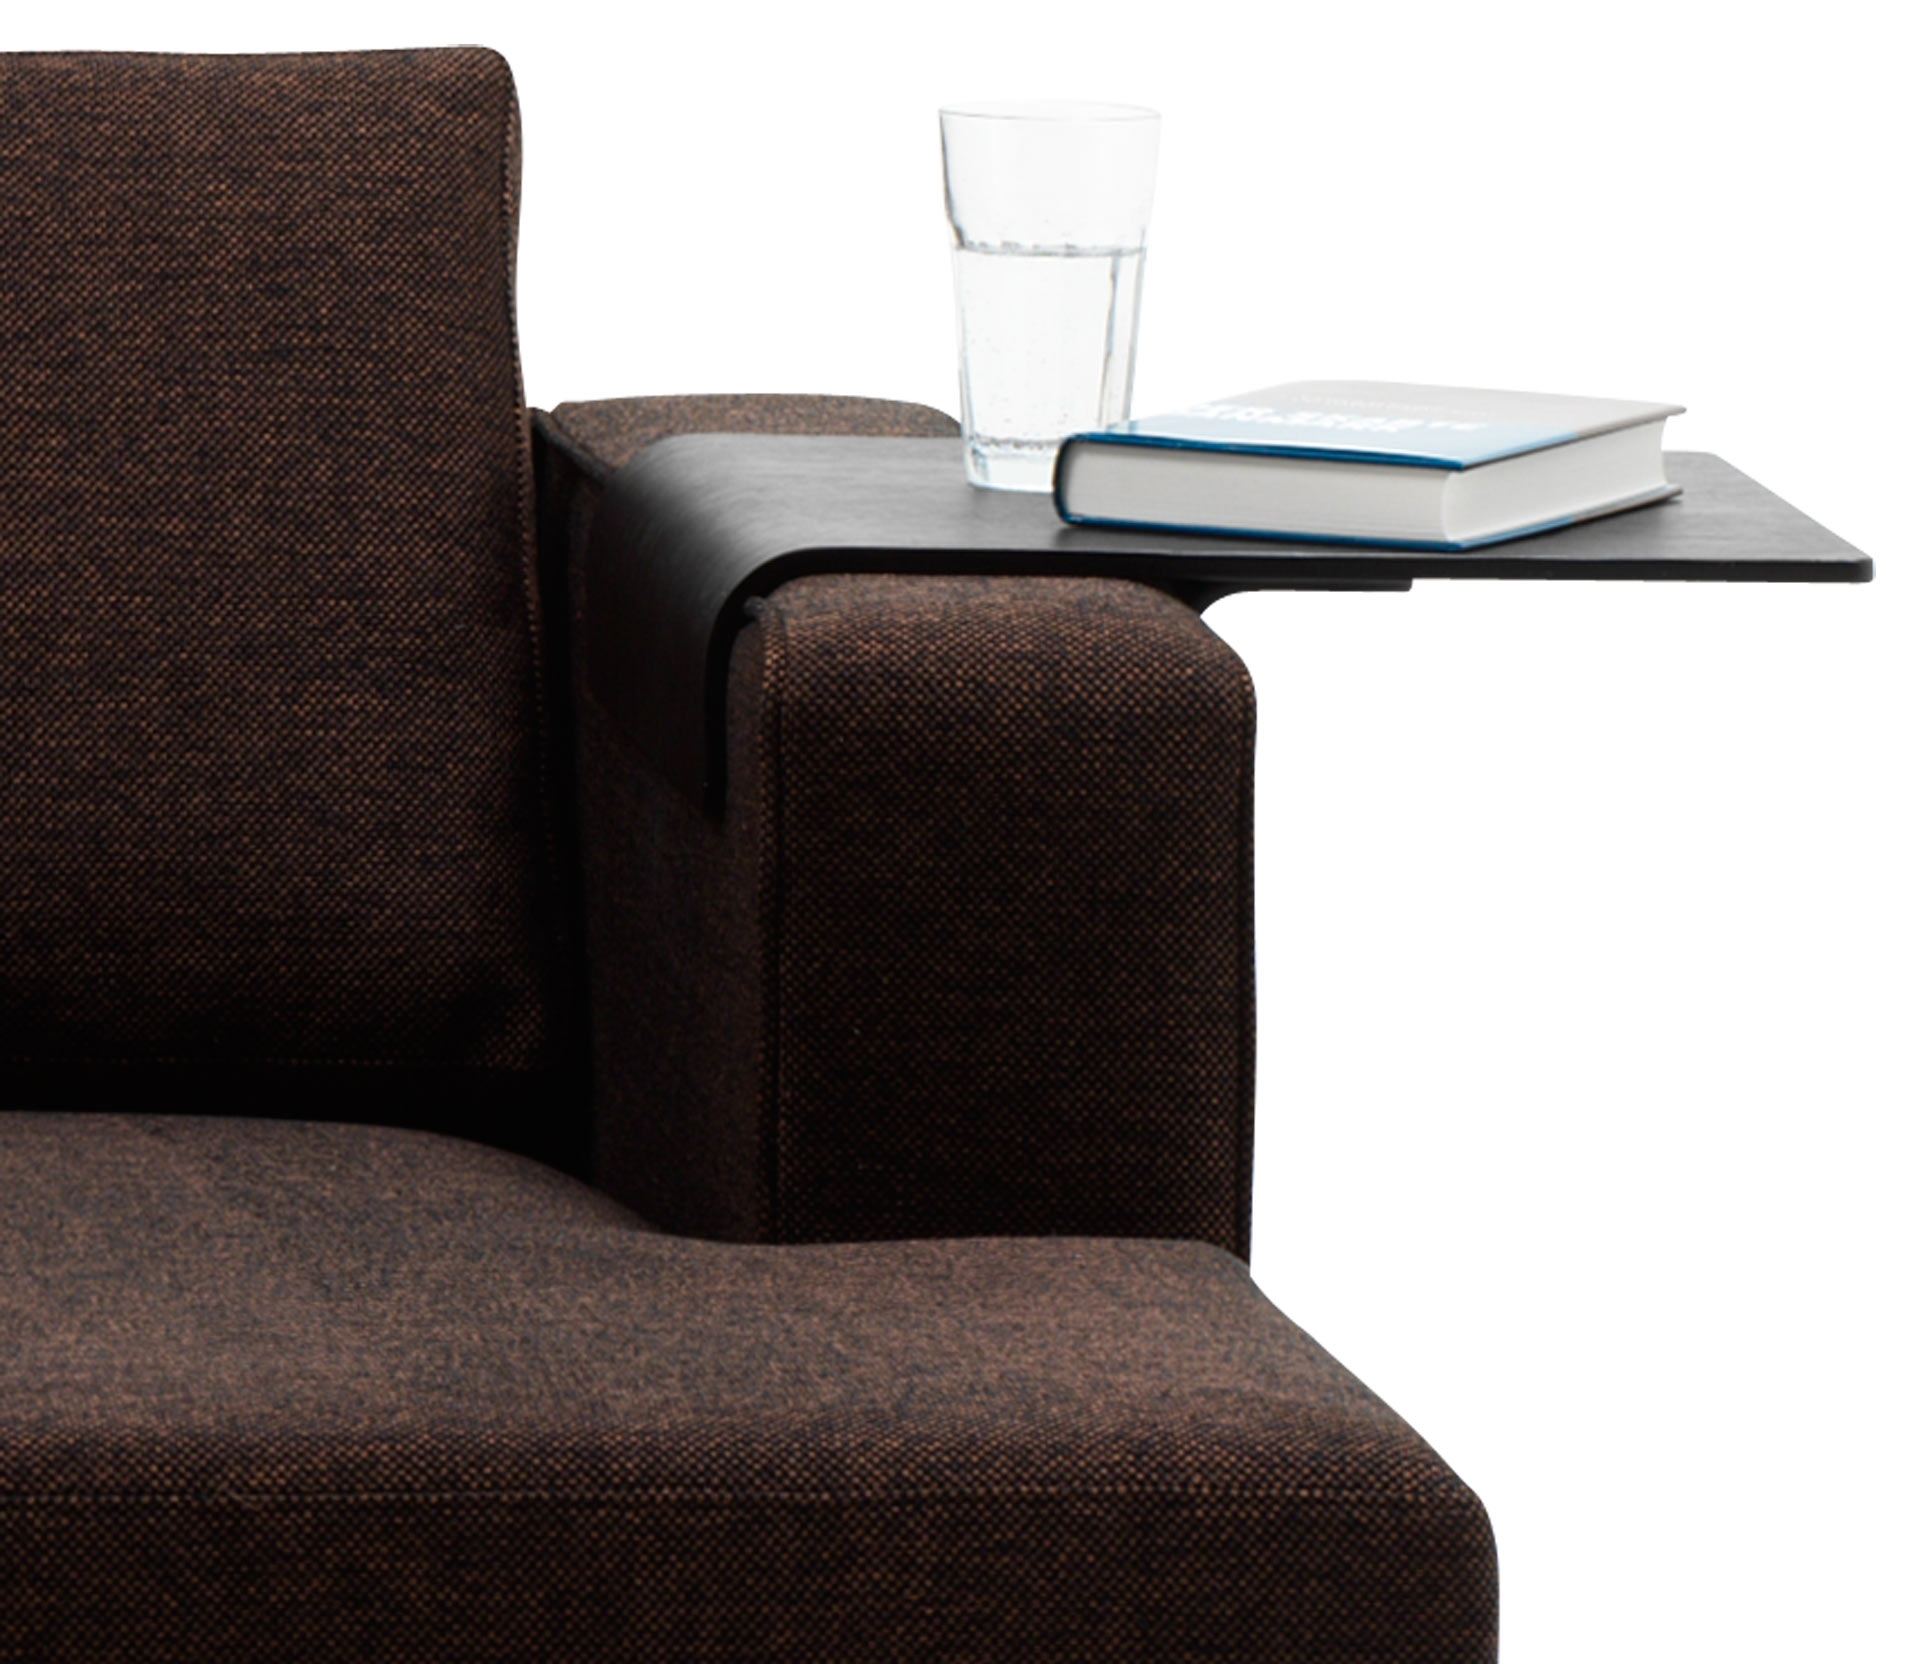 Boconcept Tray Black Stained Oak Veneer In Sofa Accessories With Sofa Accessories (Image 4 of 15)